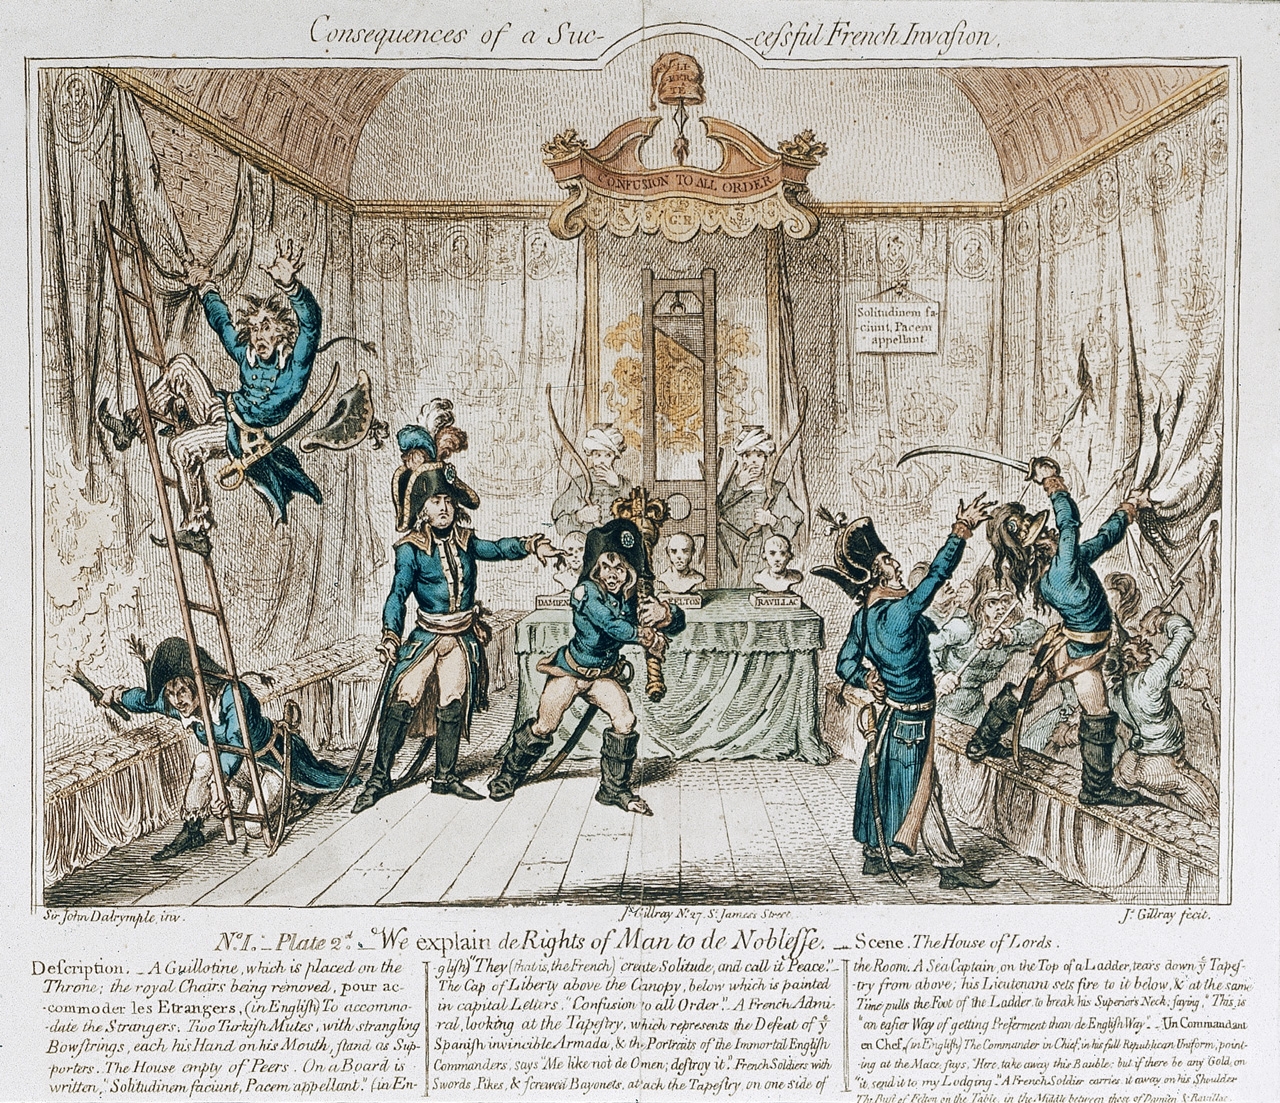 James Gillray. Consequences of a Successful French Invasion. Watercolour, 1798